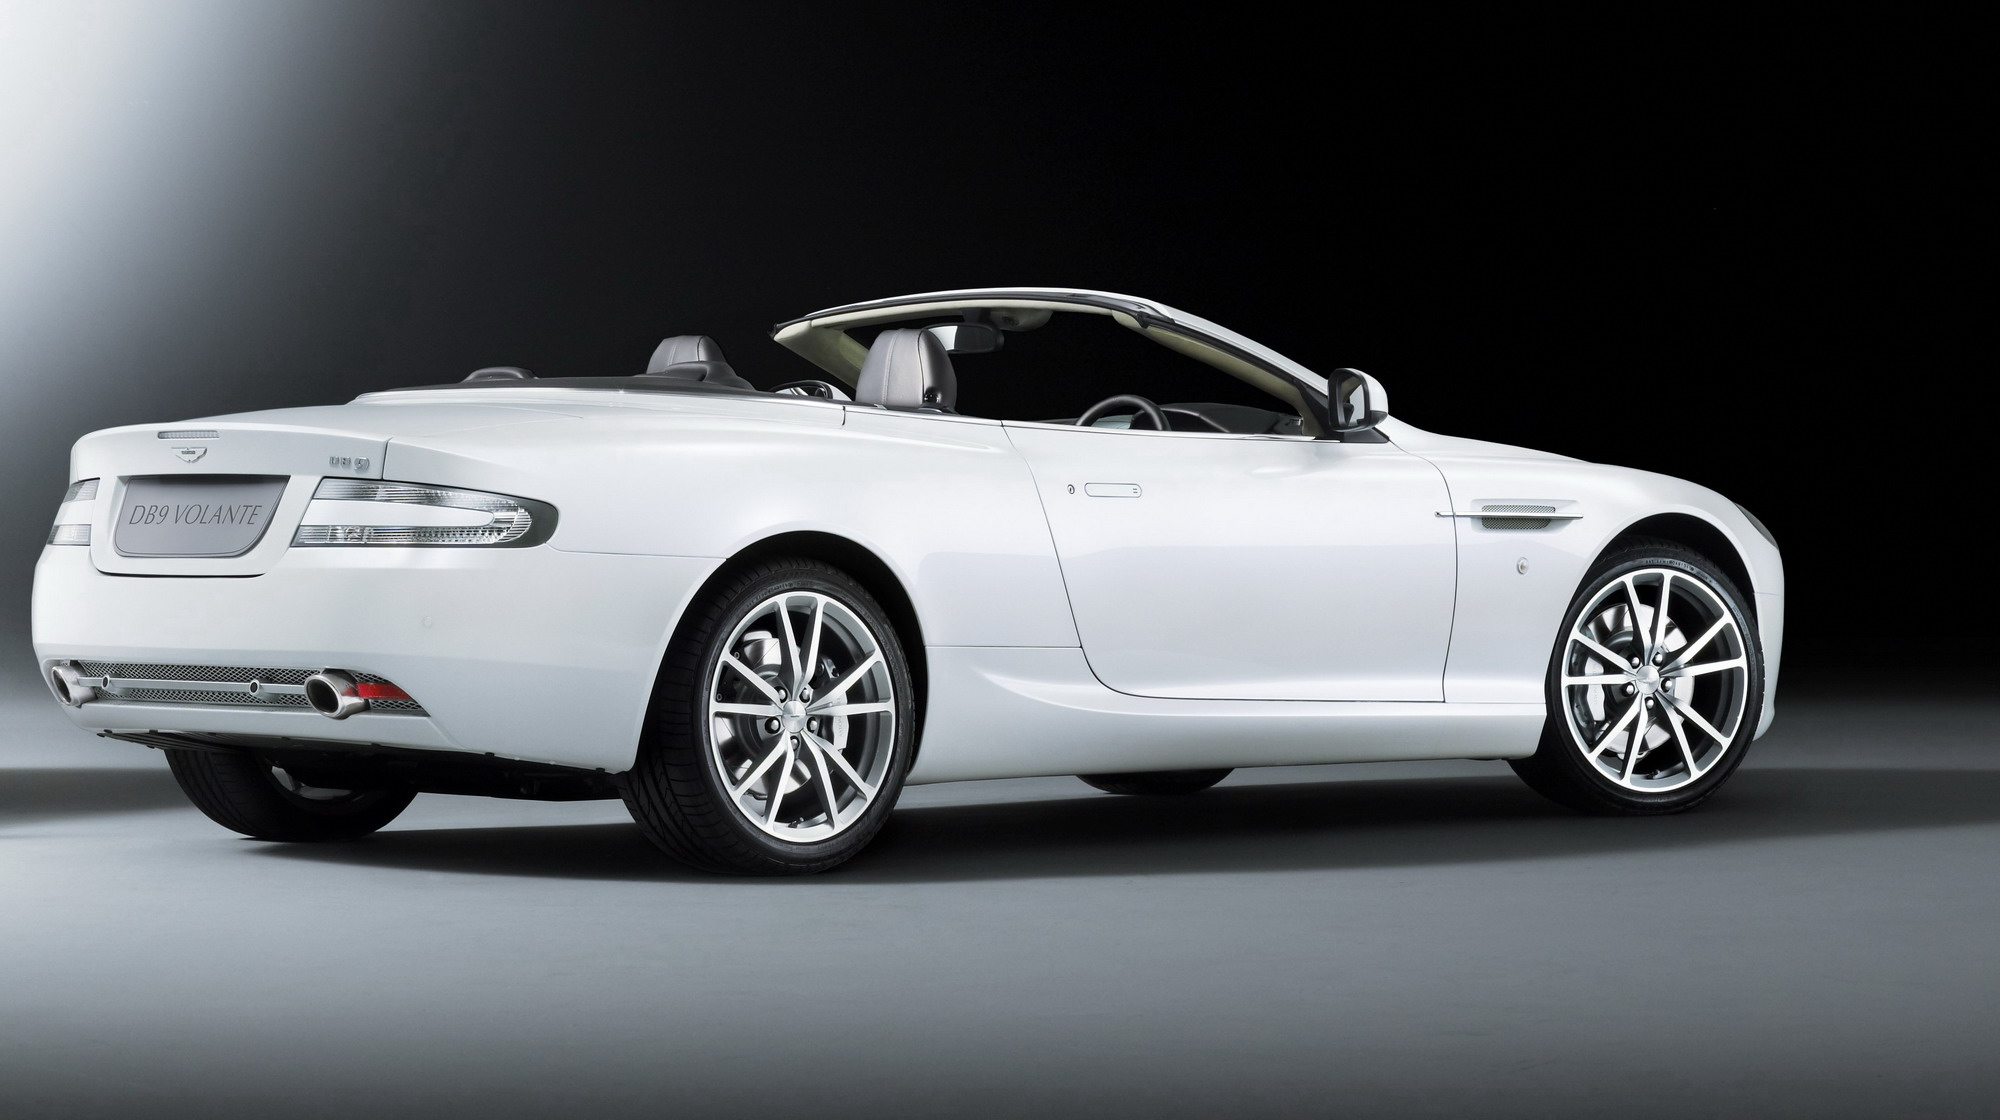 2011 aston martin db9 morning frost | top speed